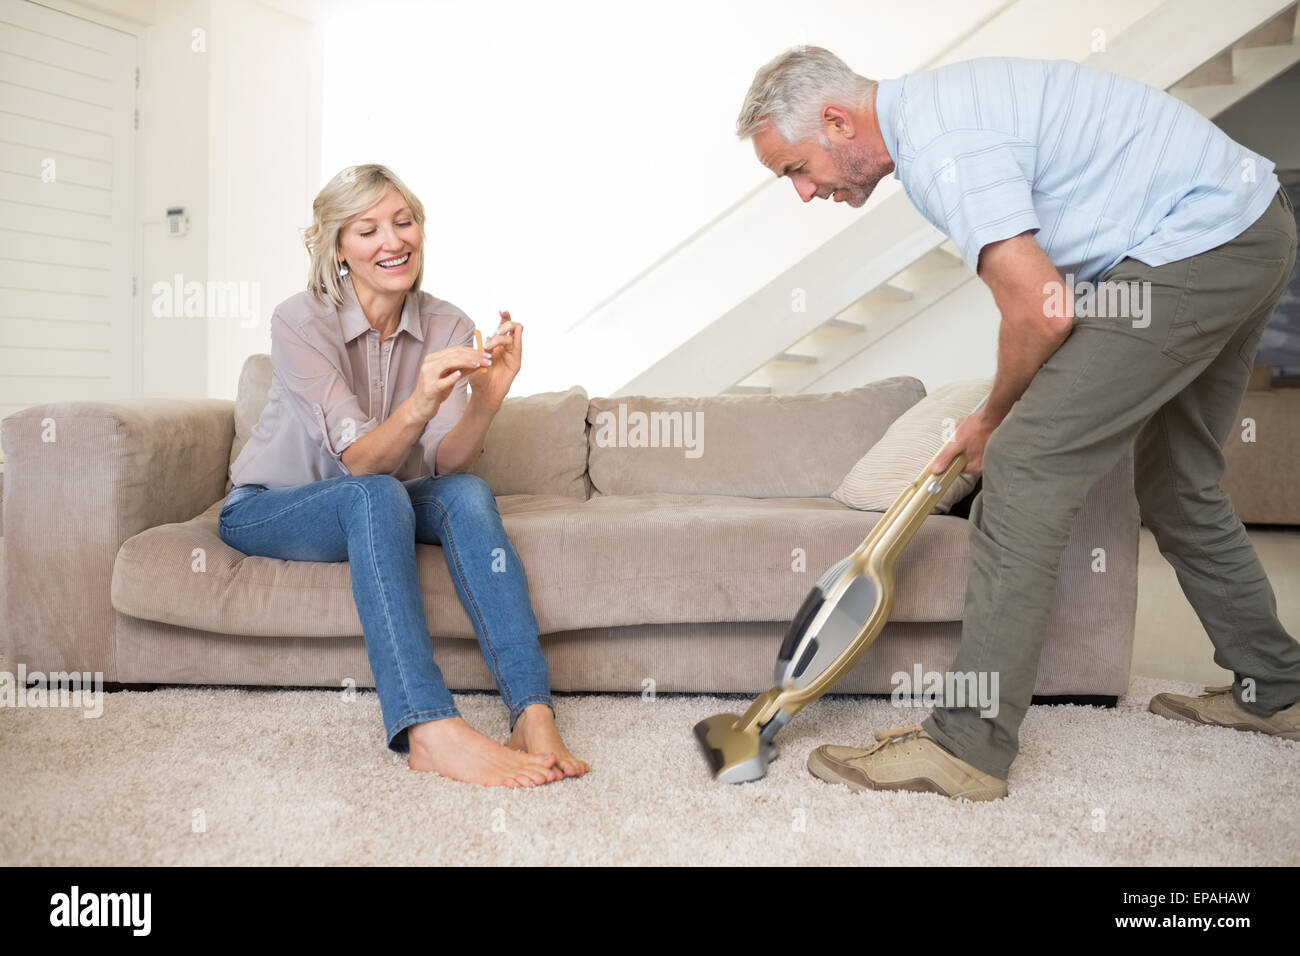 woman vacuuming room stockfotos woman vacuuming room bilder seite 3 alamy. Black Bedroom Furniture Sets. Home Design Ideas